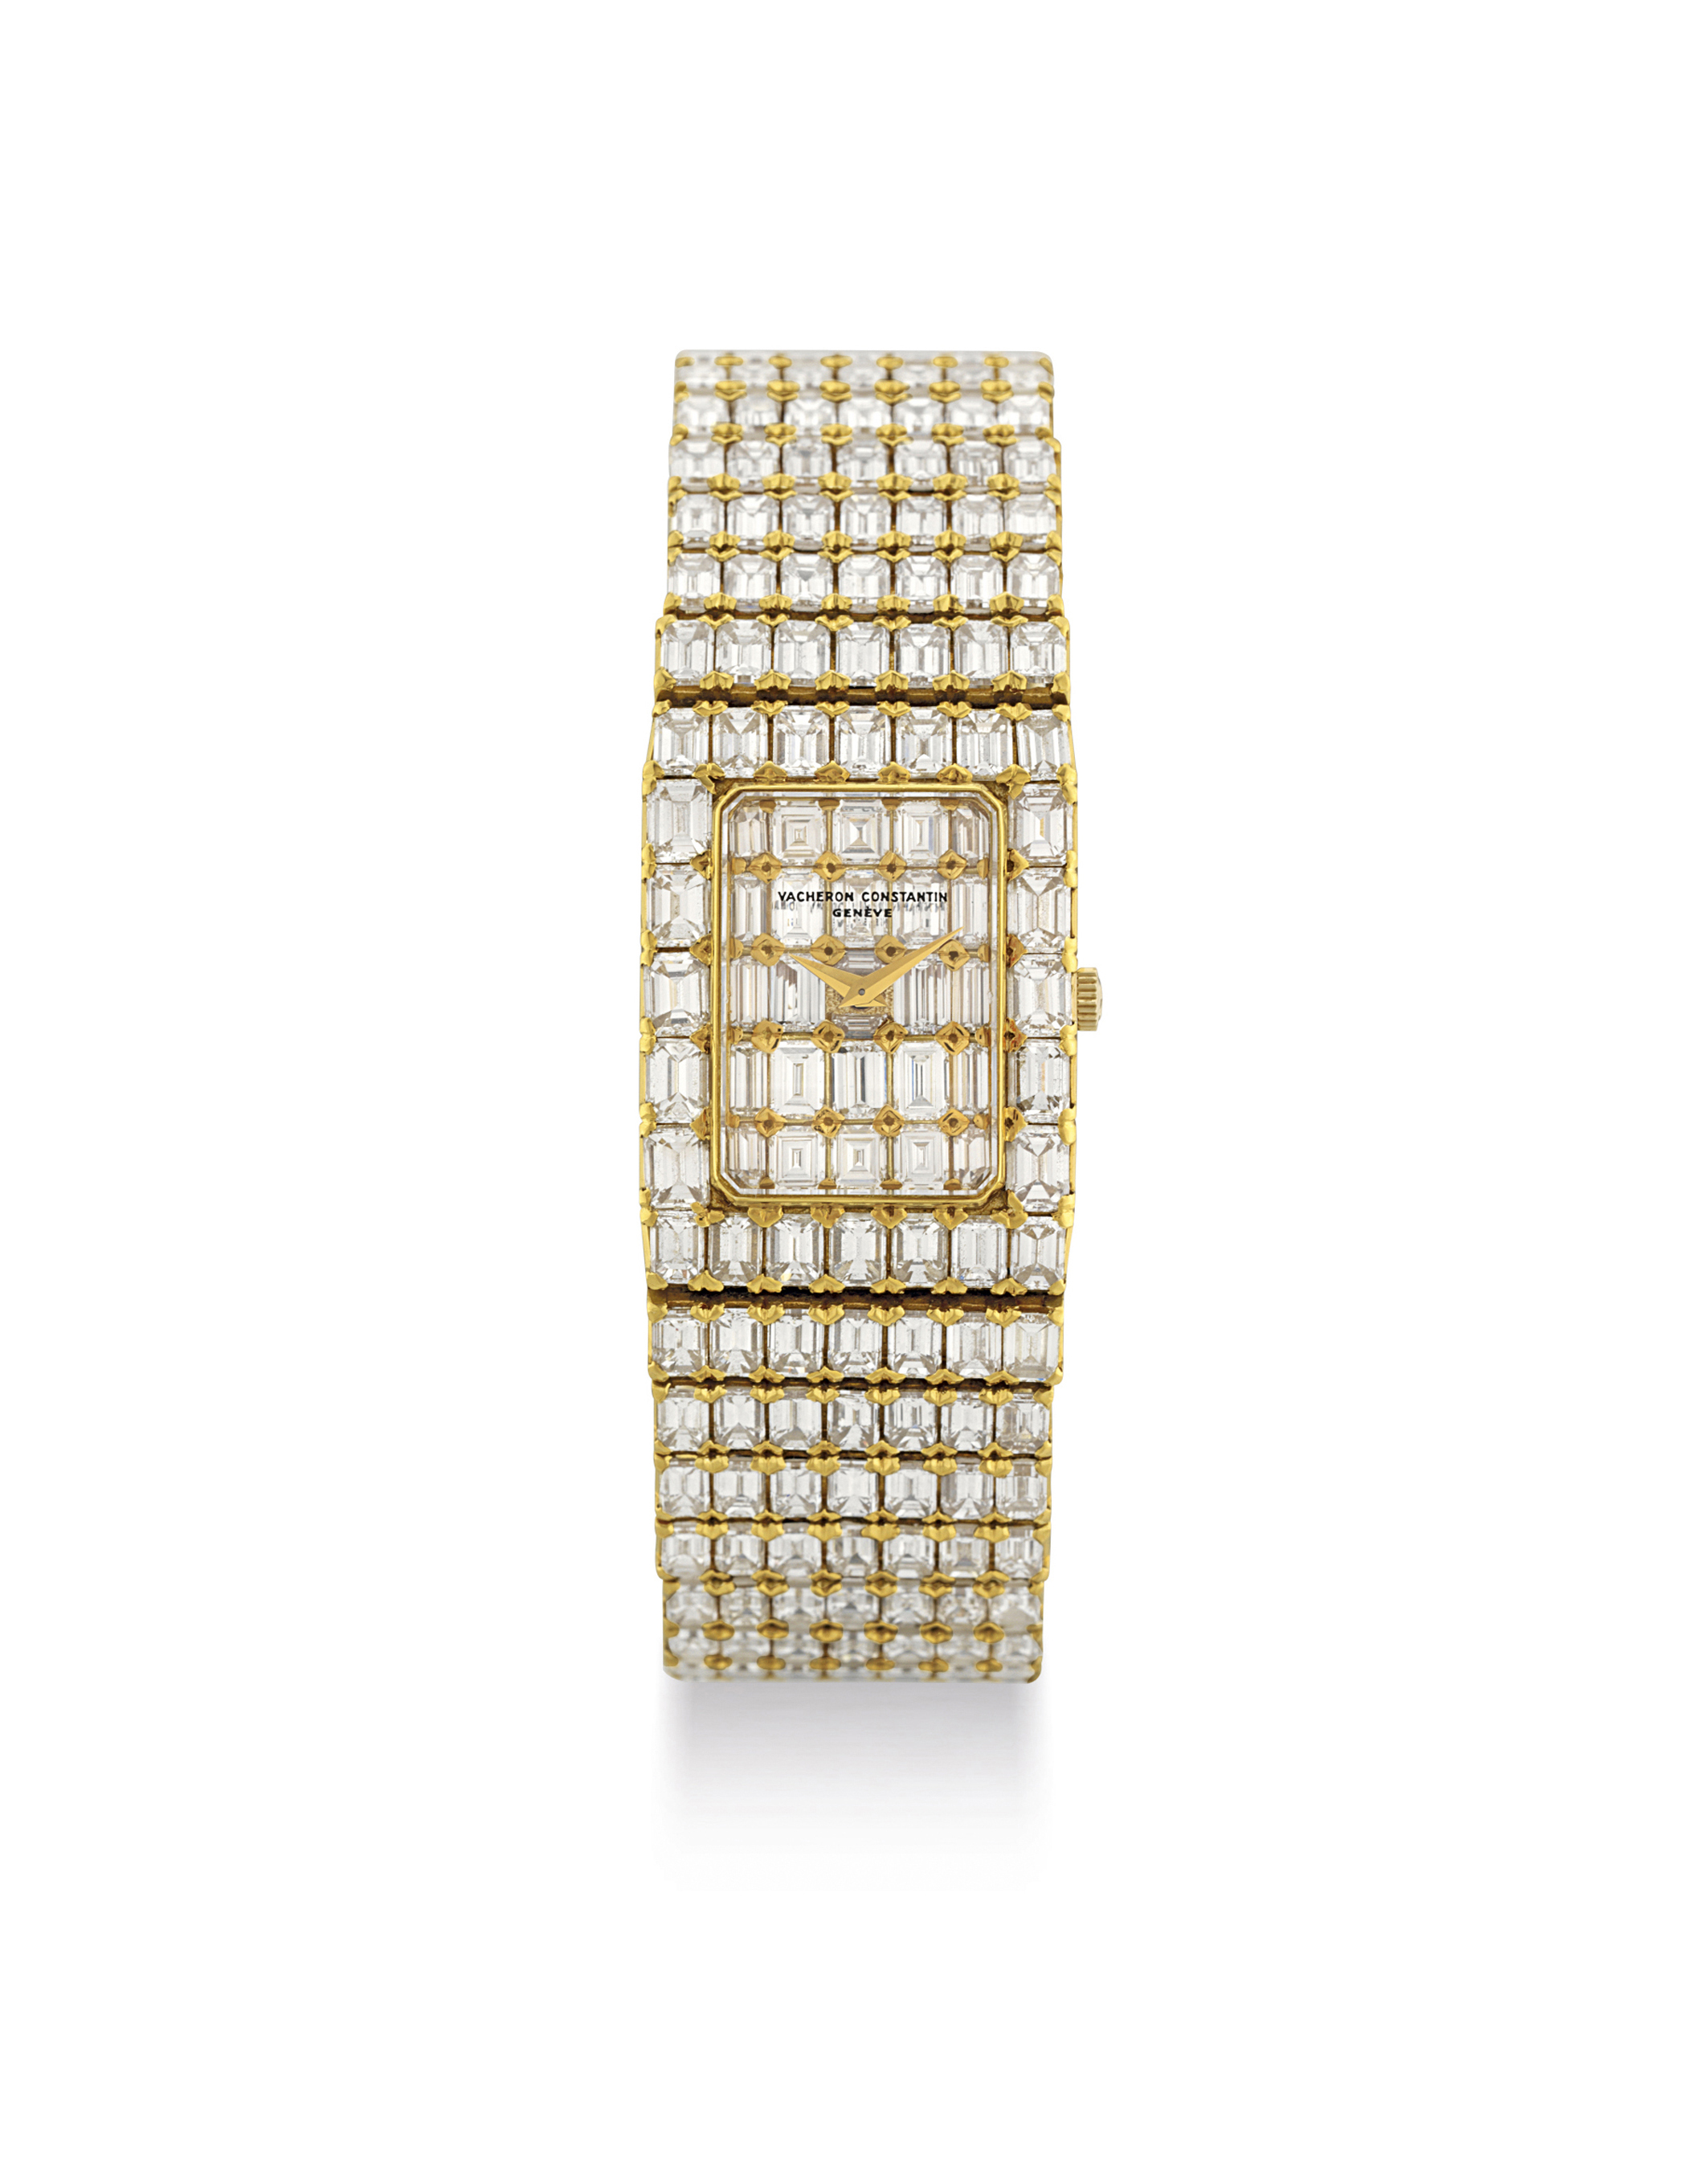 VACHERON CONSTANTIN. A SUPERB AND MAGNIFICENT 18K GOLD AND DIAMOND-SET RECTANGULAR BRACELET WATCH